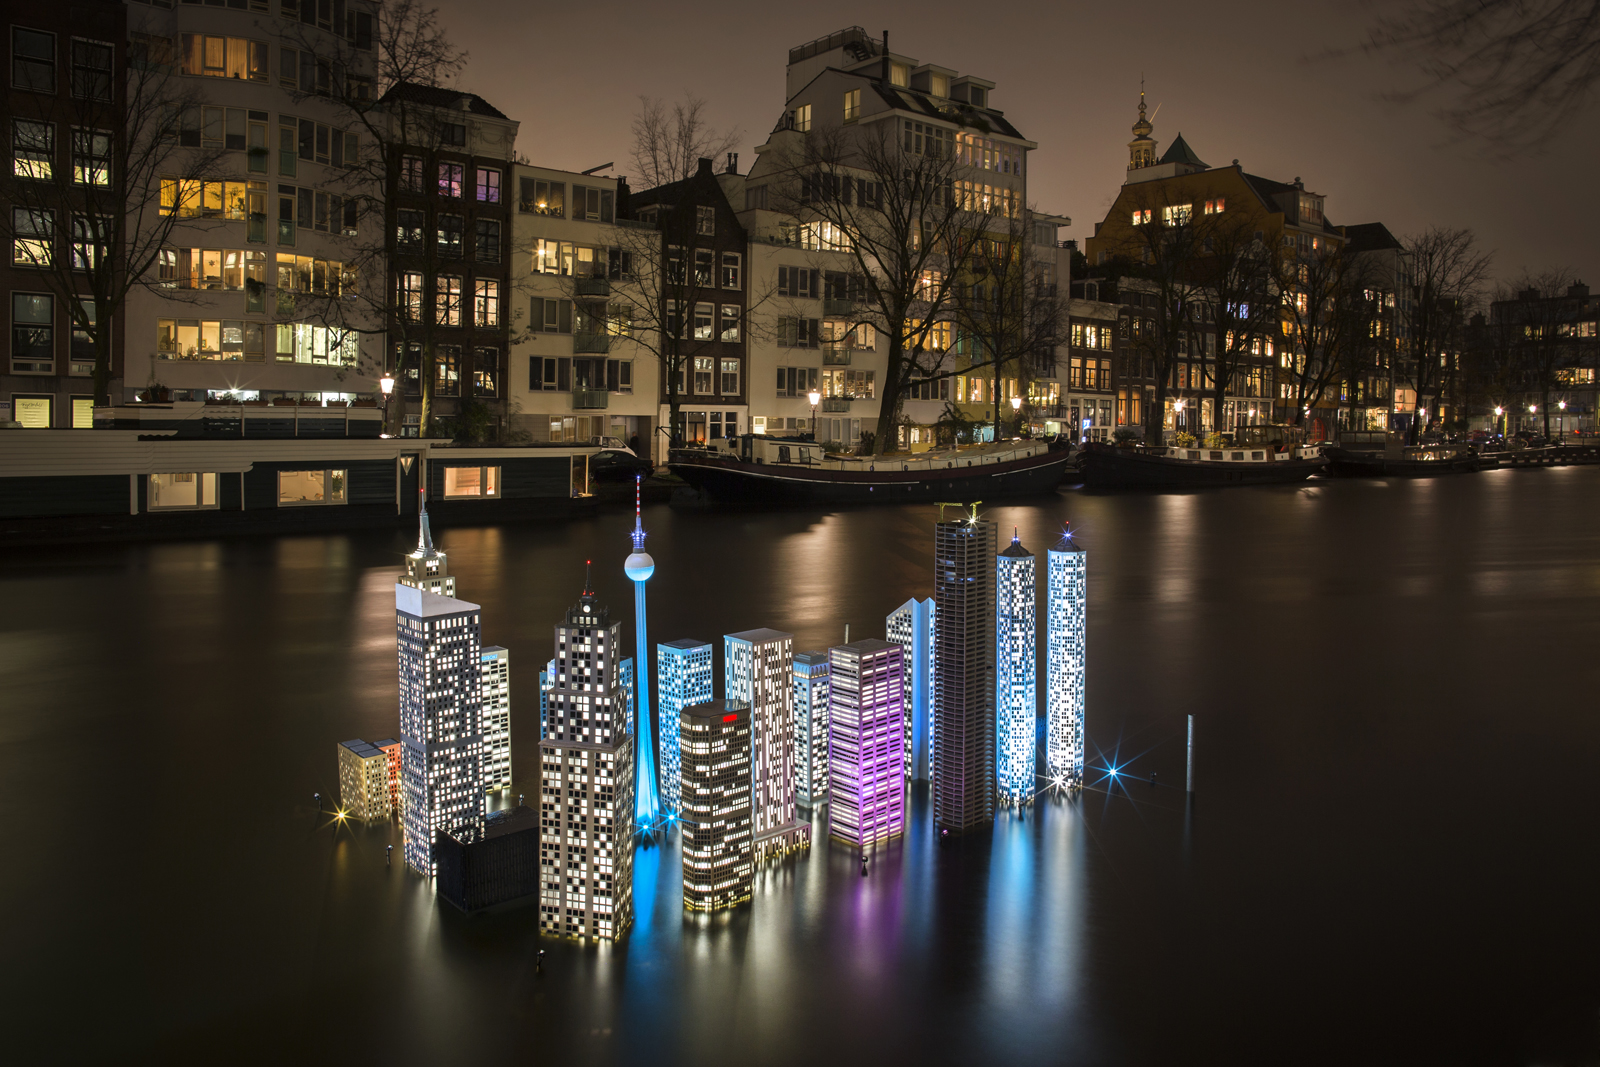 The Amsterdam Light Festival 2019-20 amazing image show